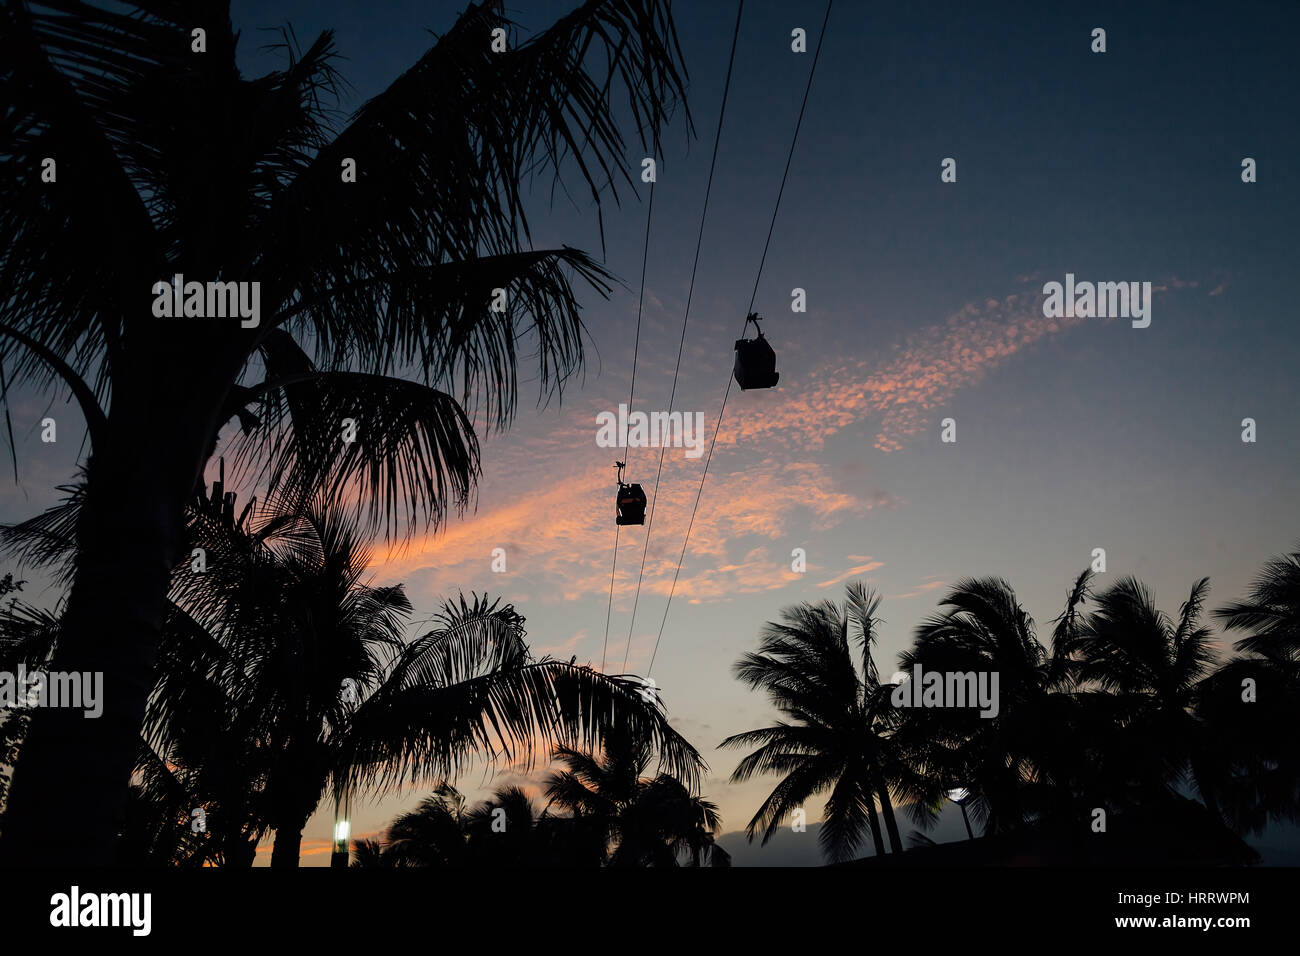 cable way silhouette at sunset twilight in Vietnam Vinpearl - Stock Image